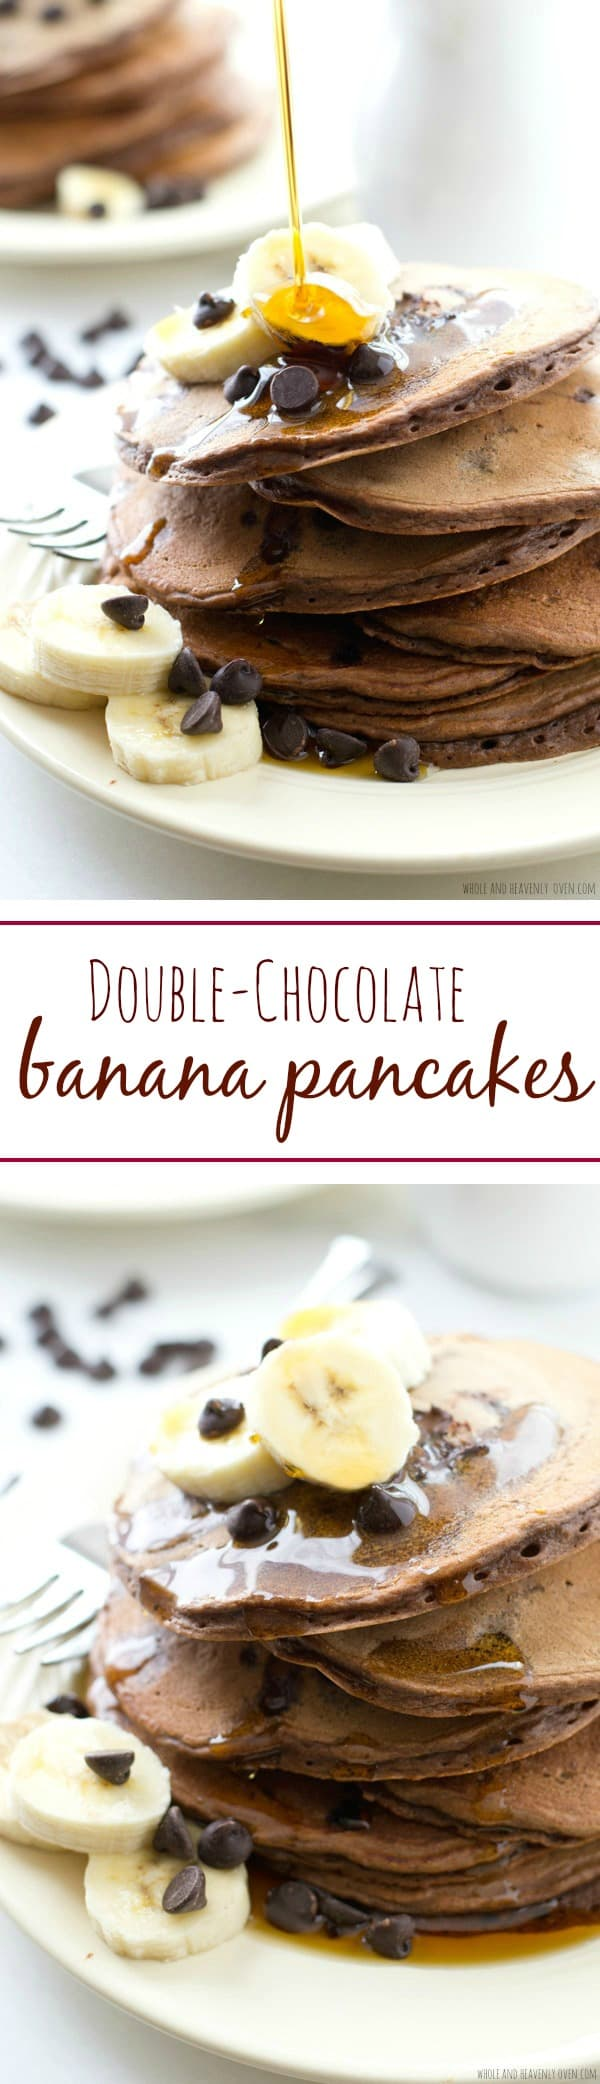 """These thick, fluffy pancakes are loaded with lots of banana flavor and a double-delight of chocolate---Your family will go """"bananas"""" for these crowd-pleasing pancakes! @WholeHeavenly"""